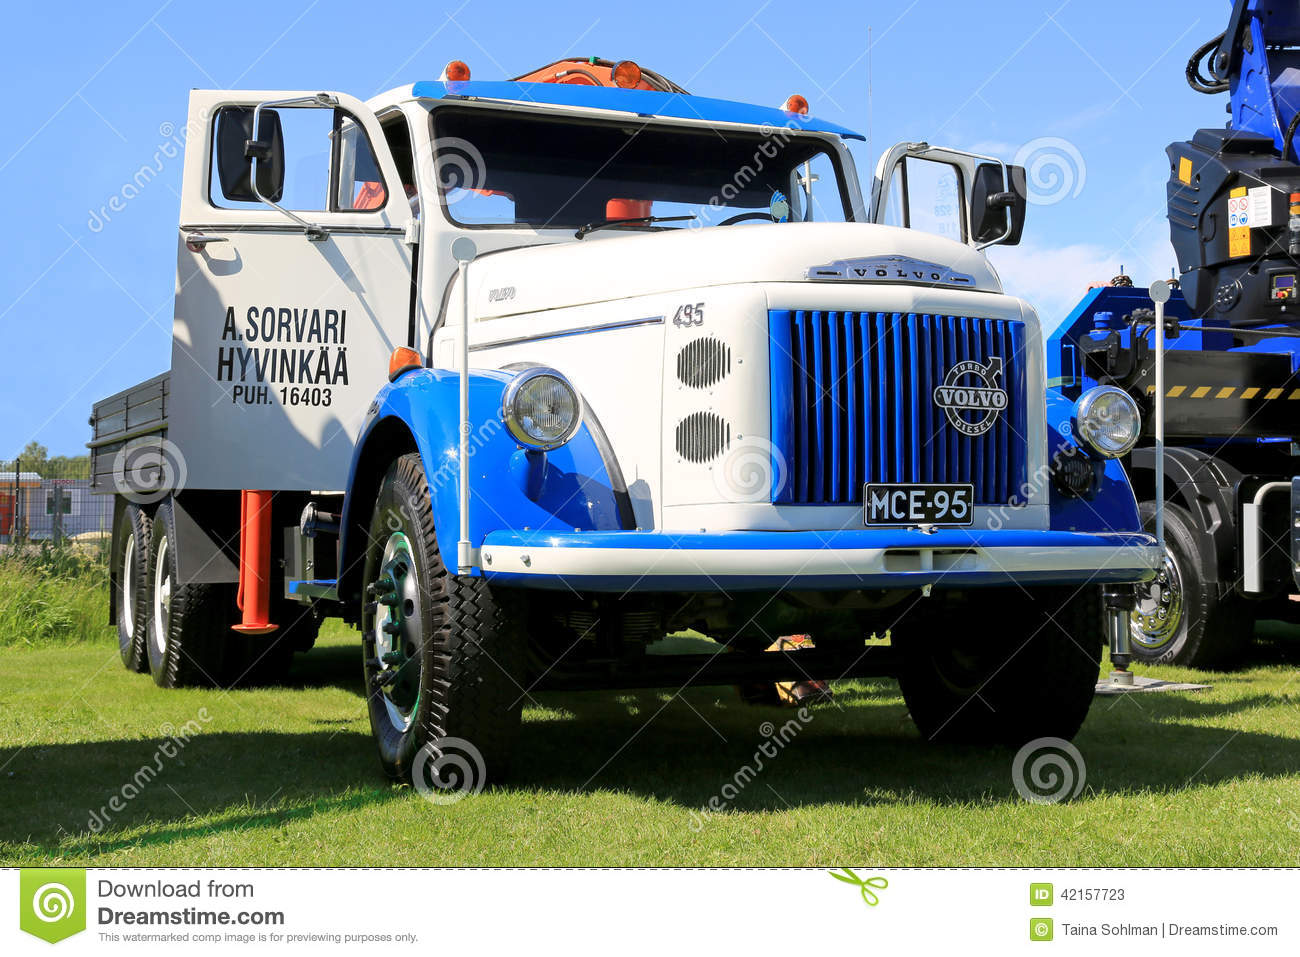 Volvo 495 Vintage Truck In A Show Editorial Stock Photo - Image of ...